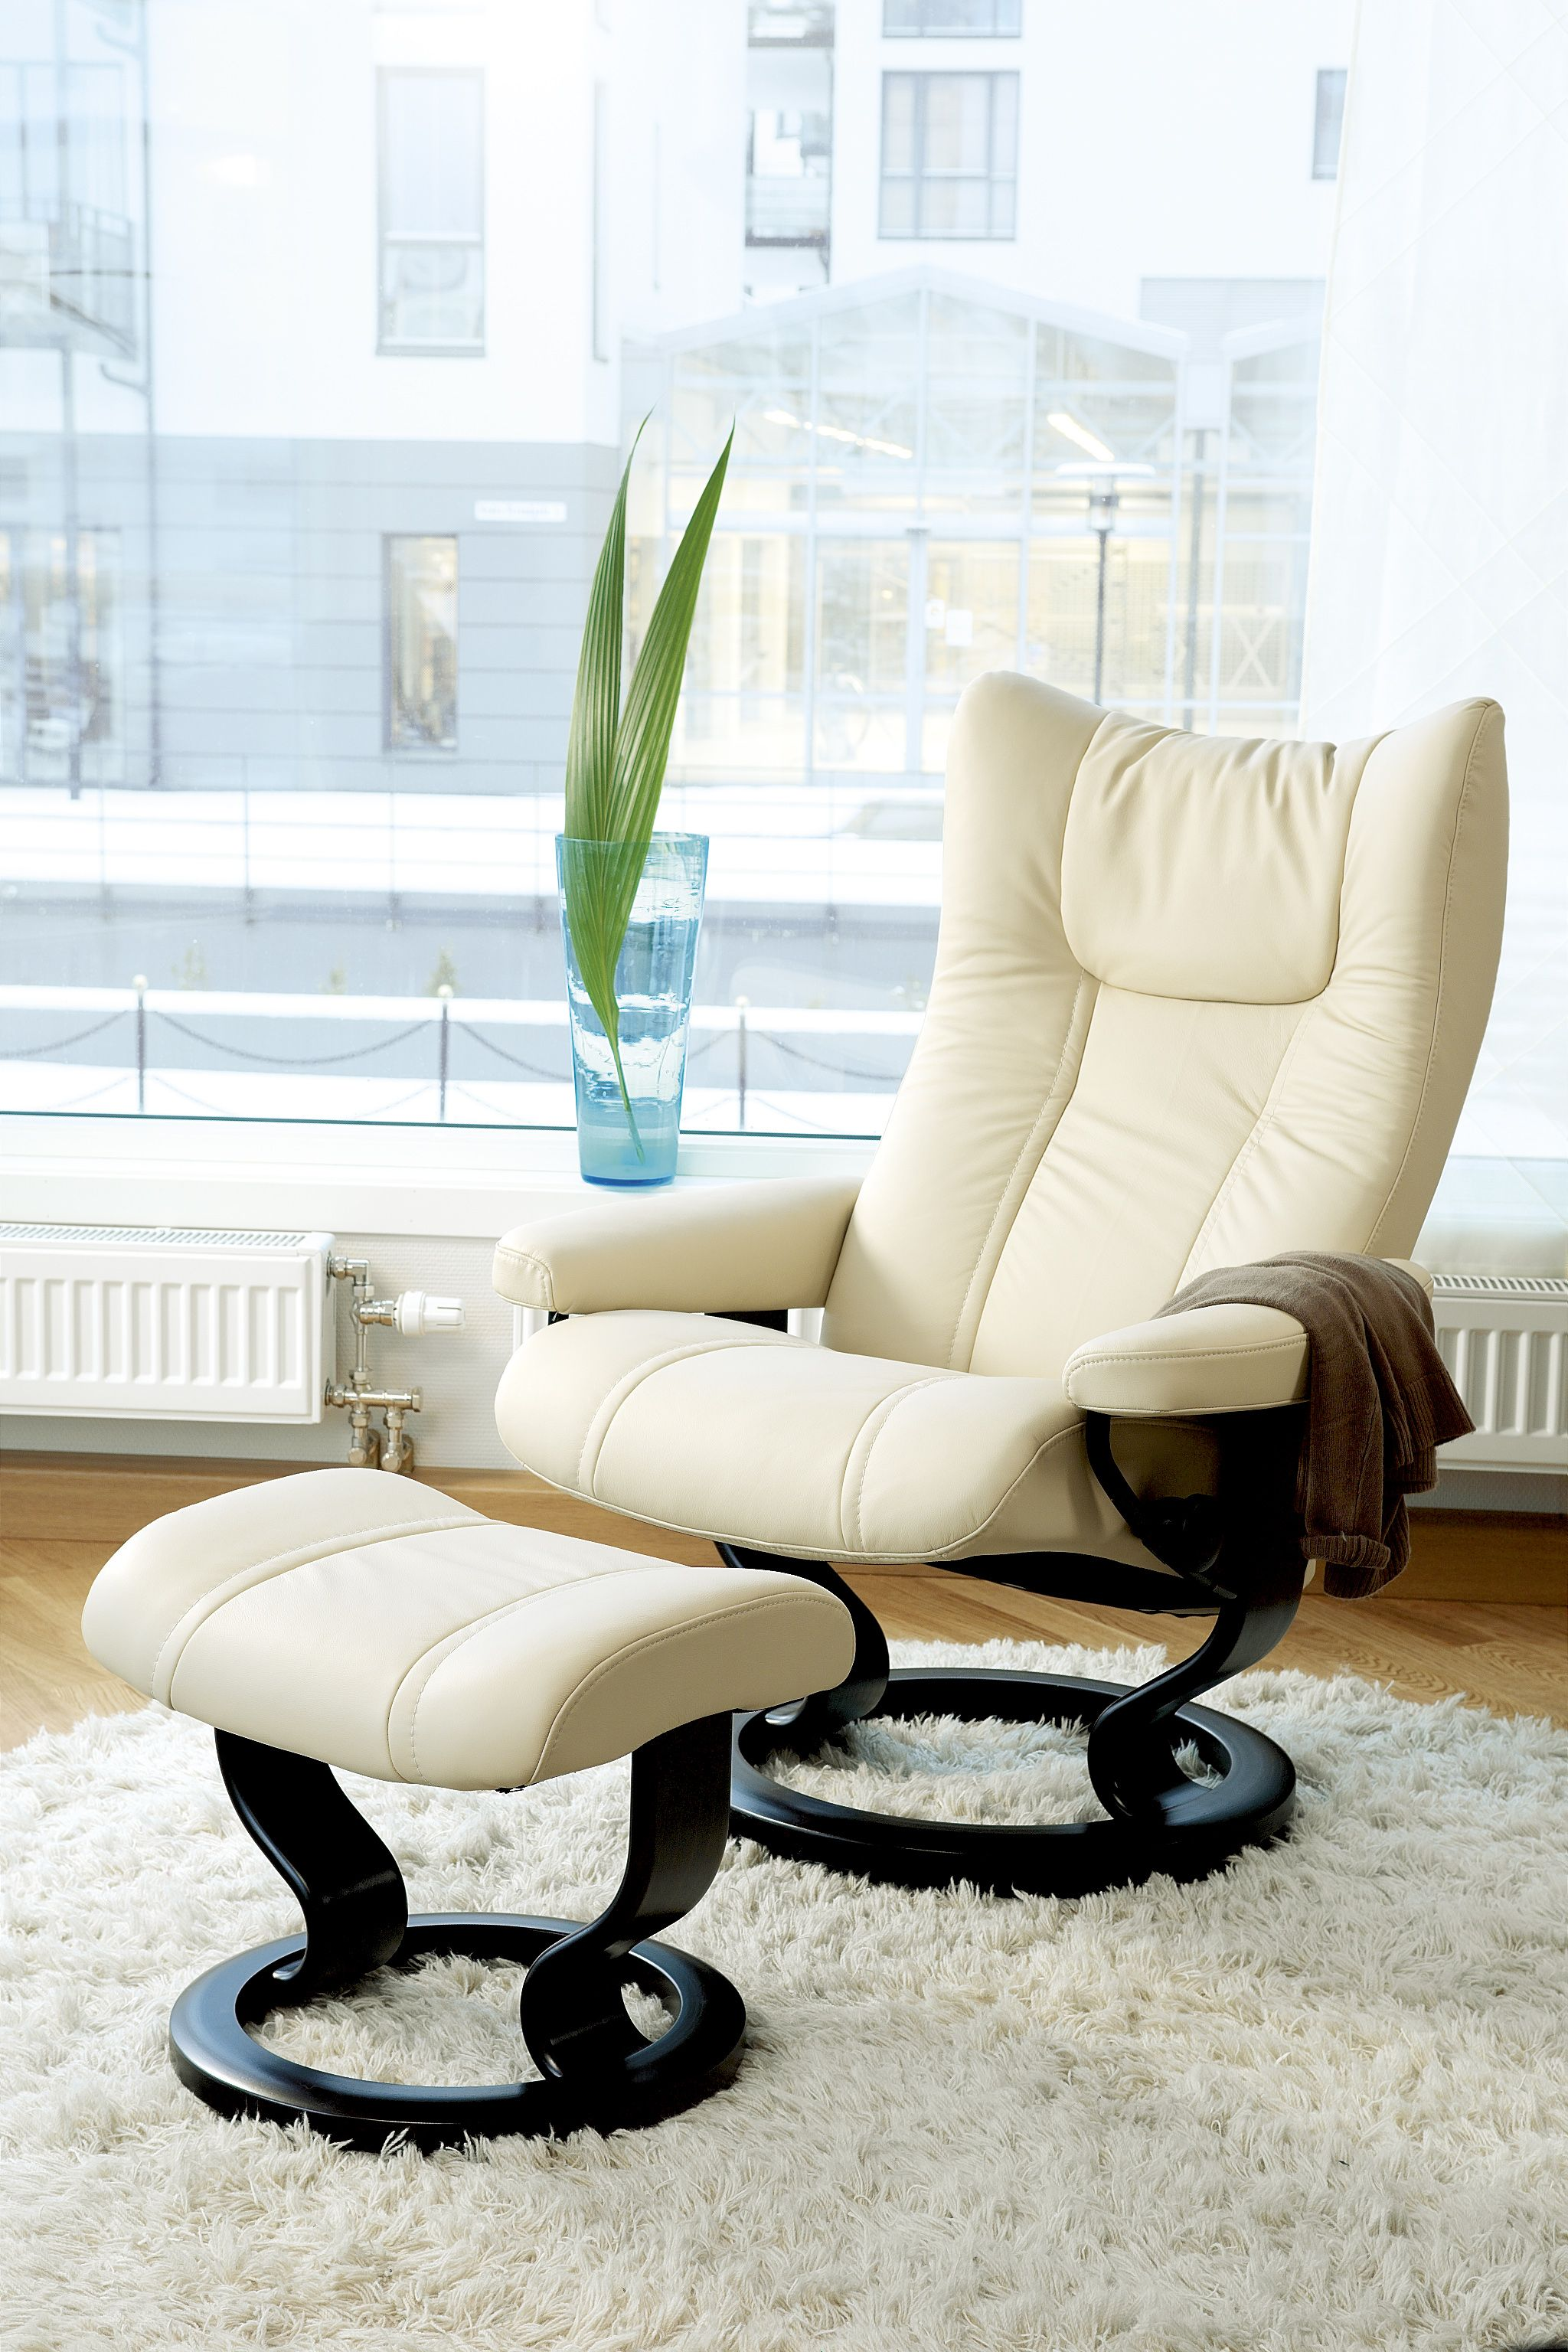 A Stylish Cream Recliner And Ottoman Perfect For The Modern